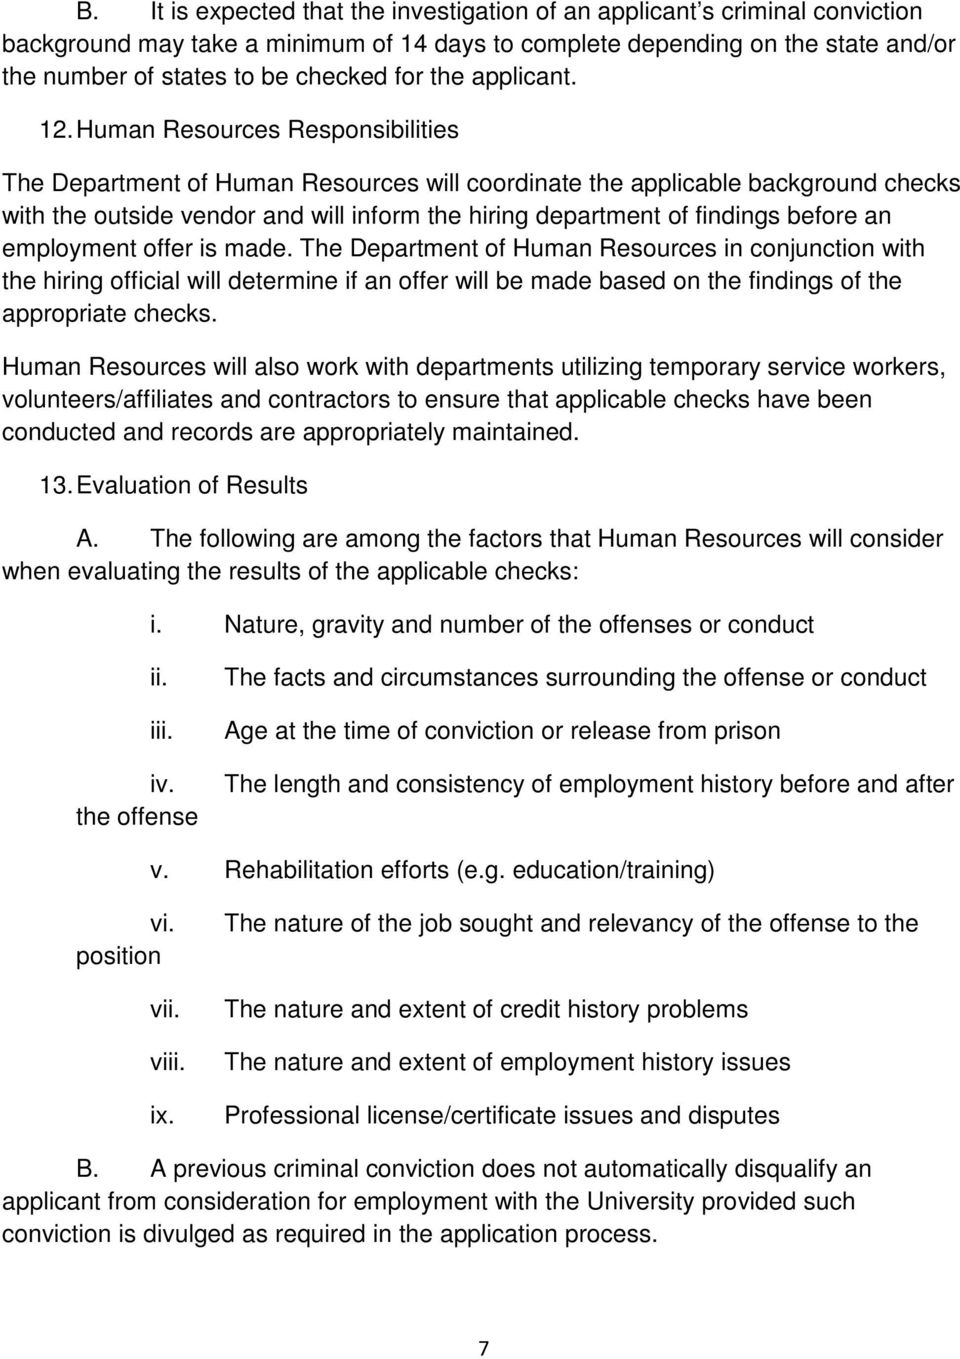 Human Resources Responsibilities The Department of Human Resources will coordinate the applicable background checks with the outside vendor and will inform the hiring department of findings before an